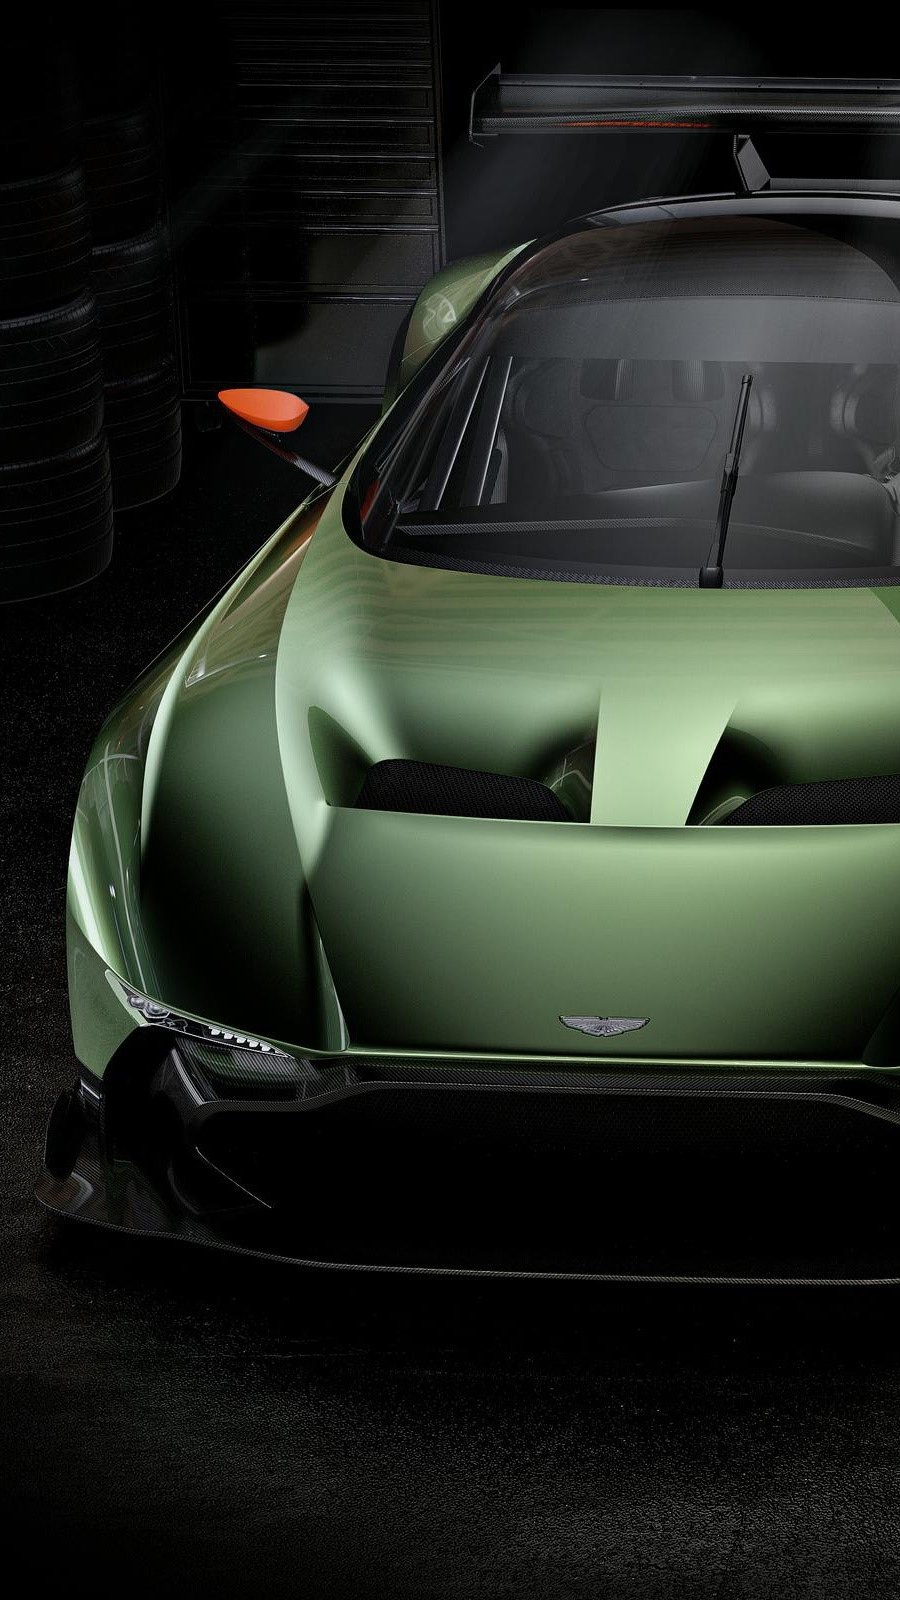 Wallpaper Aston Martin Vulcan Vertical